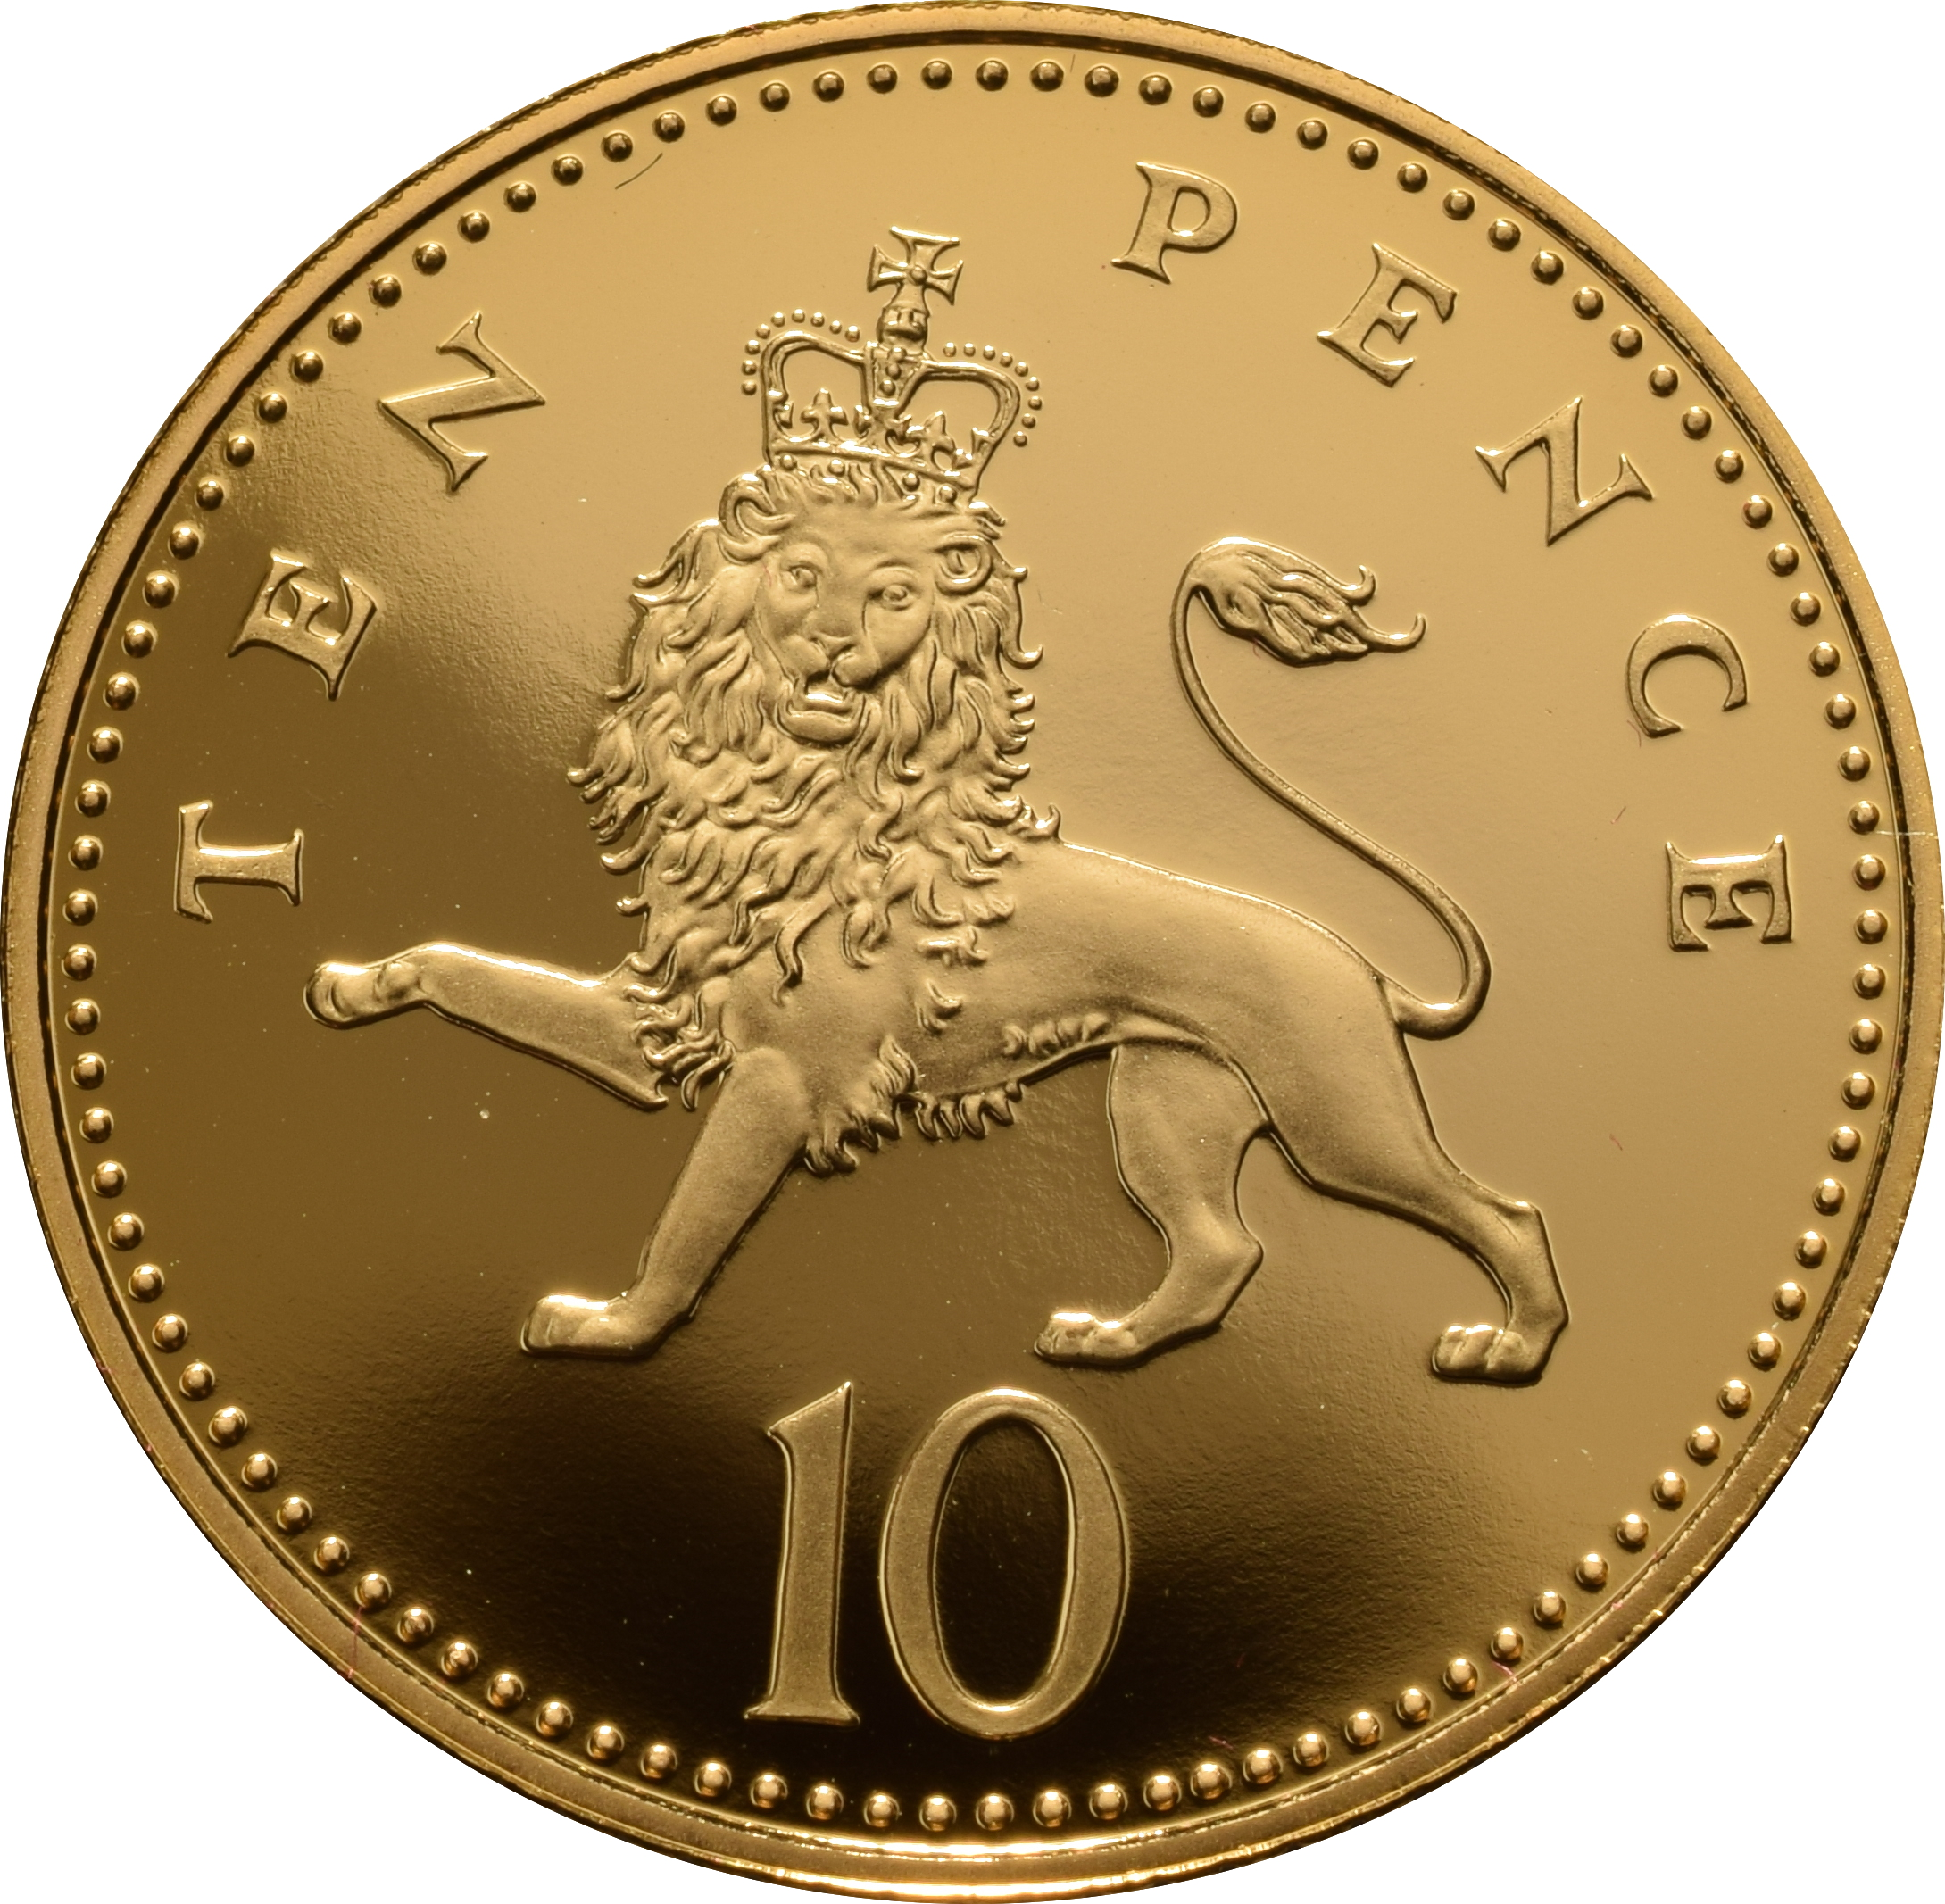 Gold Ten Pence Piece Buy 10p Gold Coins At Bullionbypost